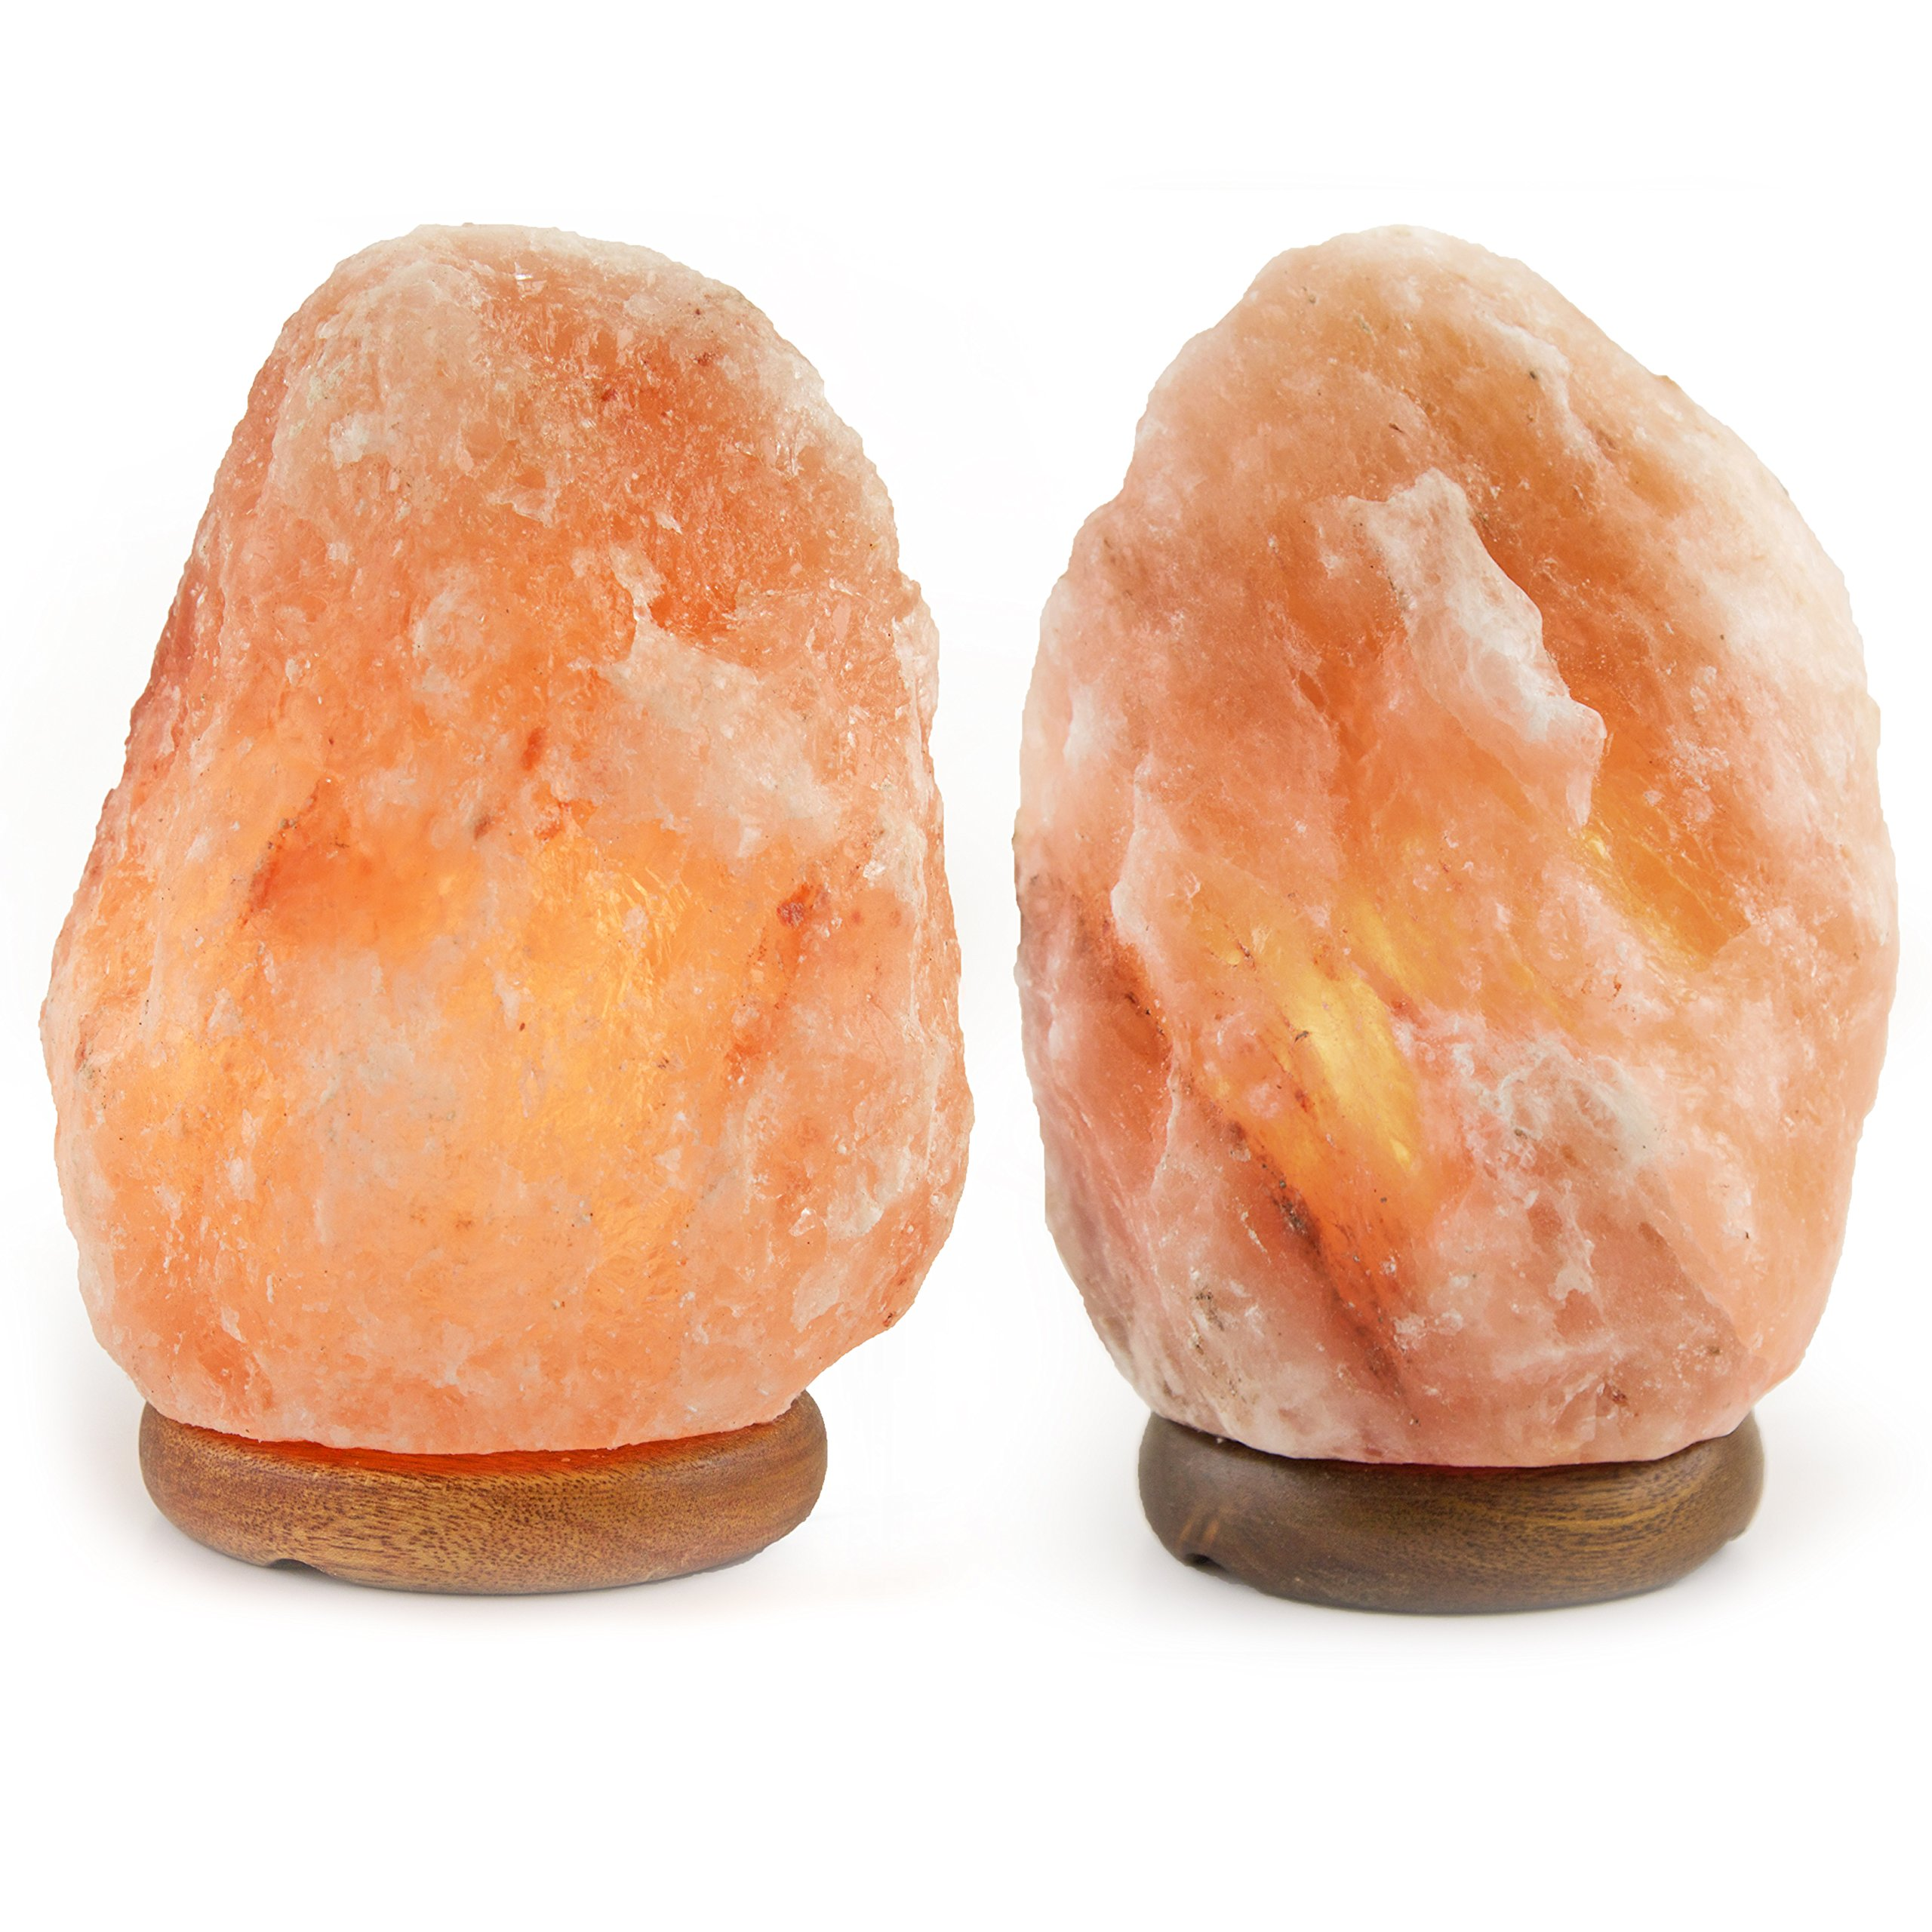 Crystal Allies Gallery CA SLS-L-2pc Natural Himalayan Salt Lamp with Dimmable Switch and 6' UL-Listed Cord (2 Pack), 10'' x 8'' x 8'', Orange